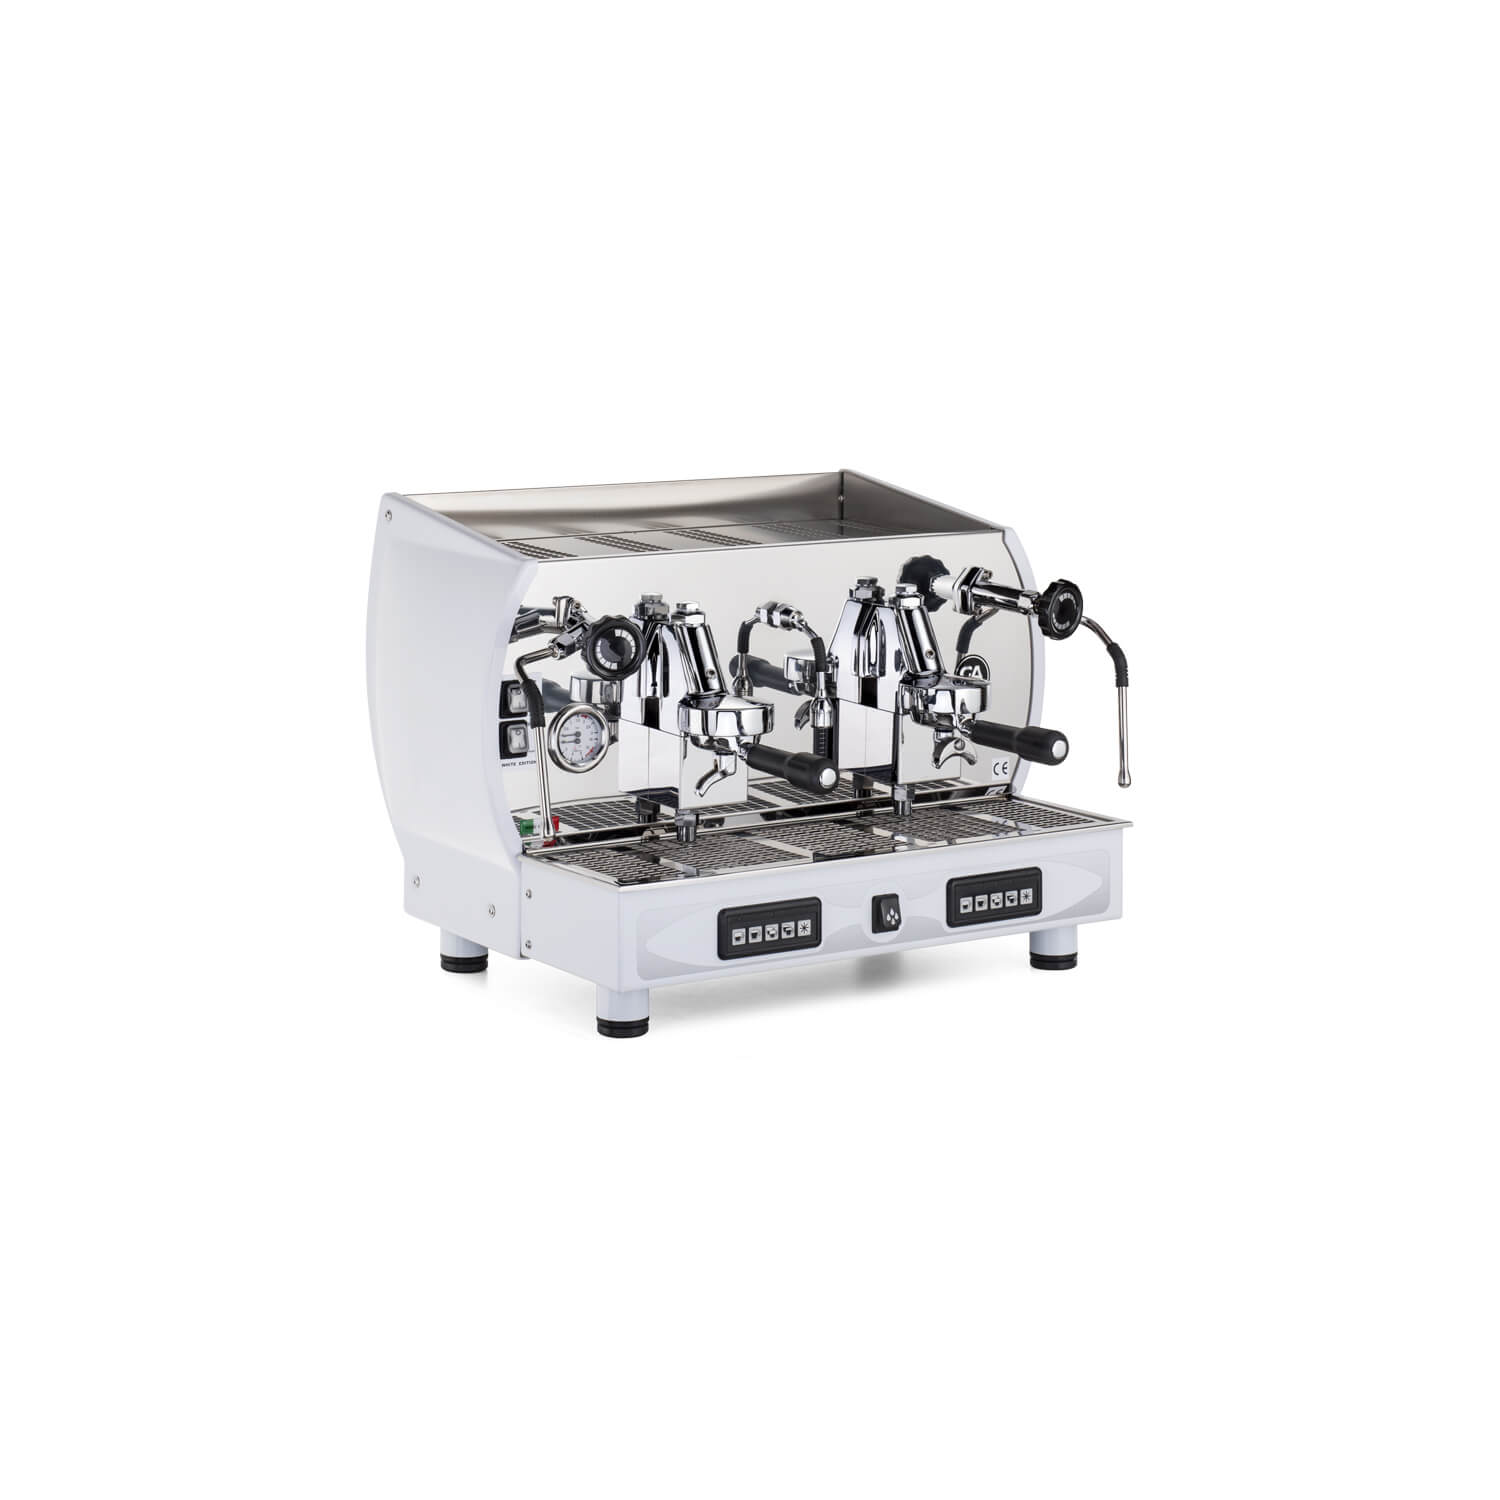 Nuova Era - Espressomachine - Altea white 2-groeps